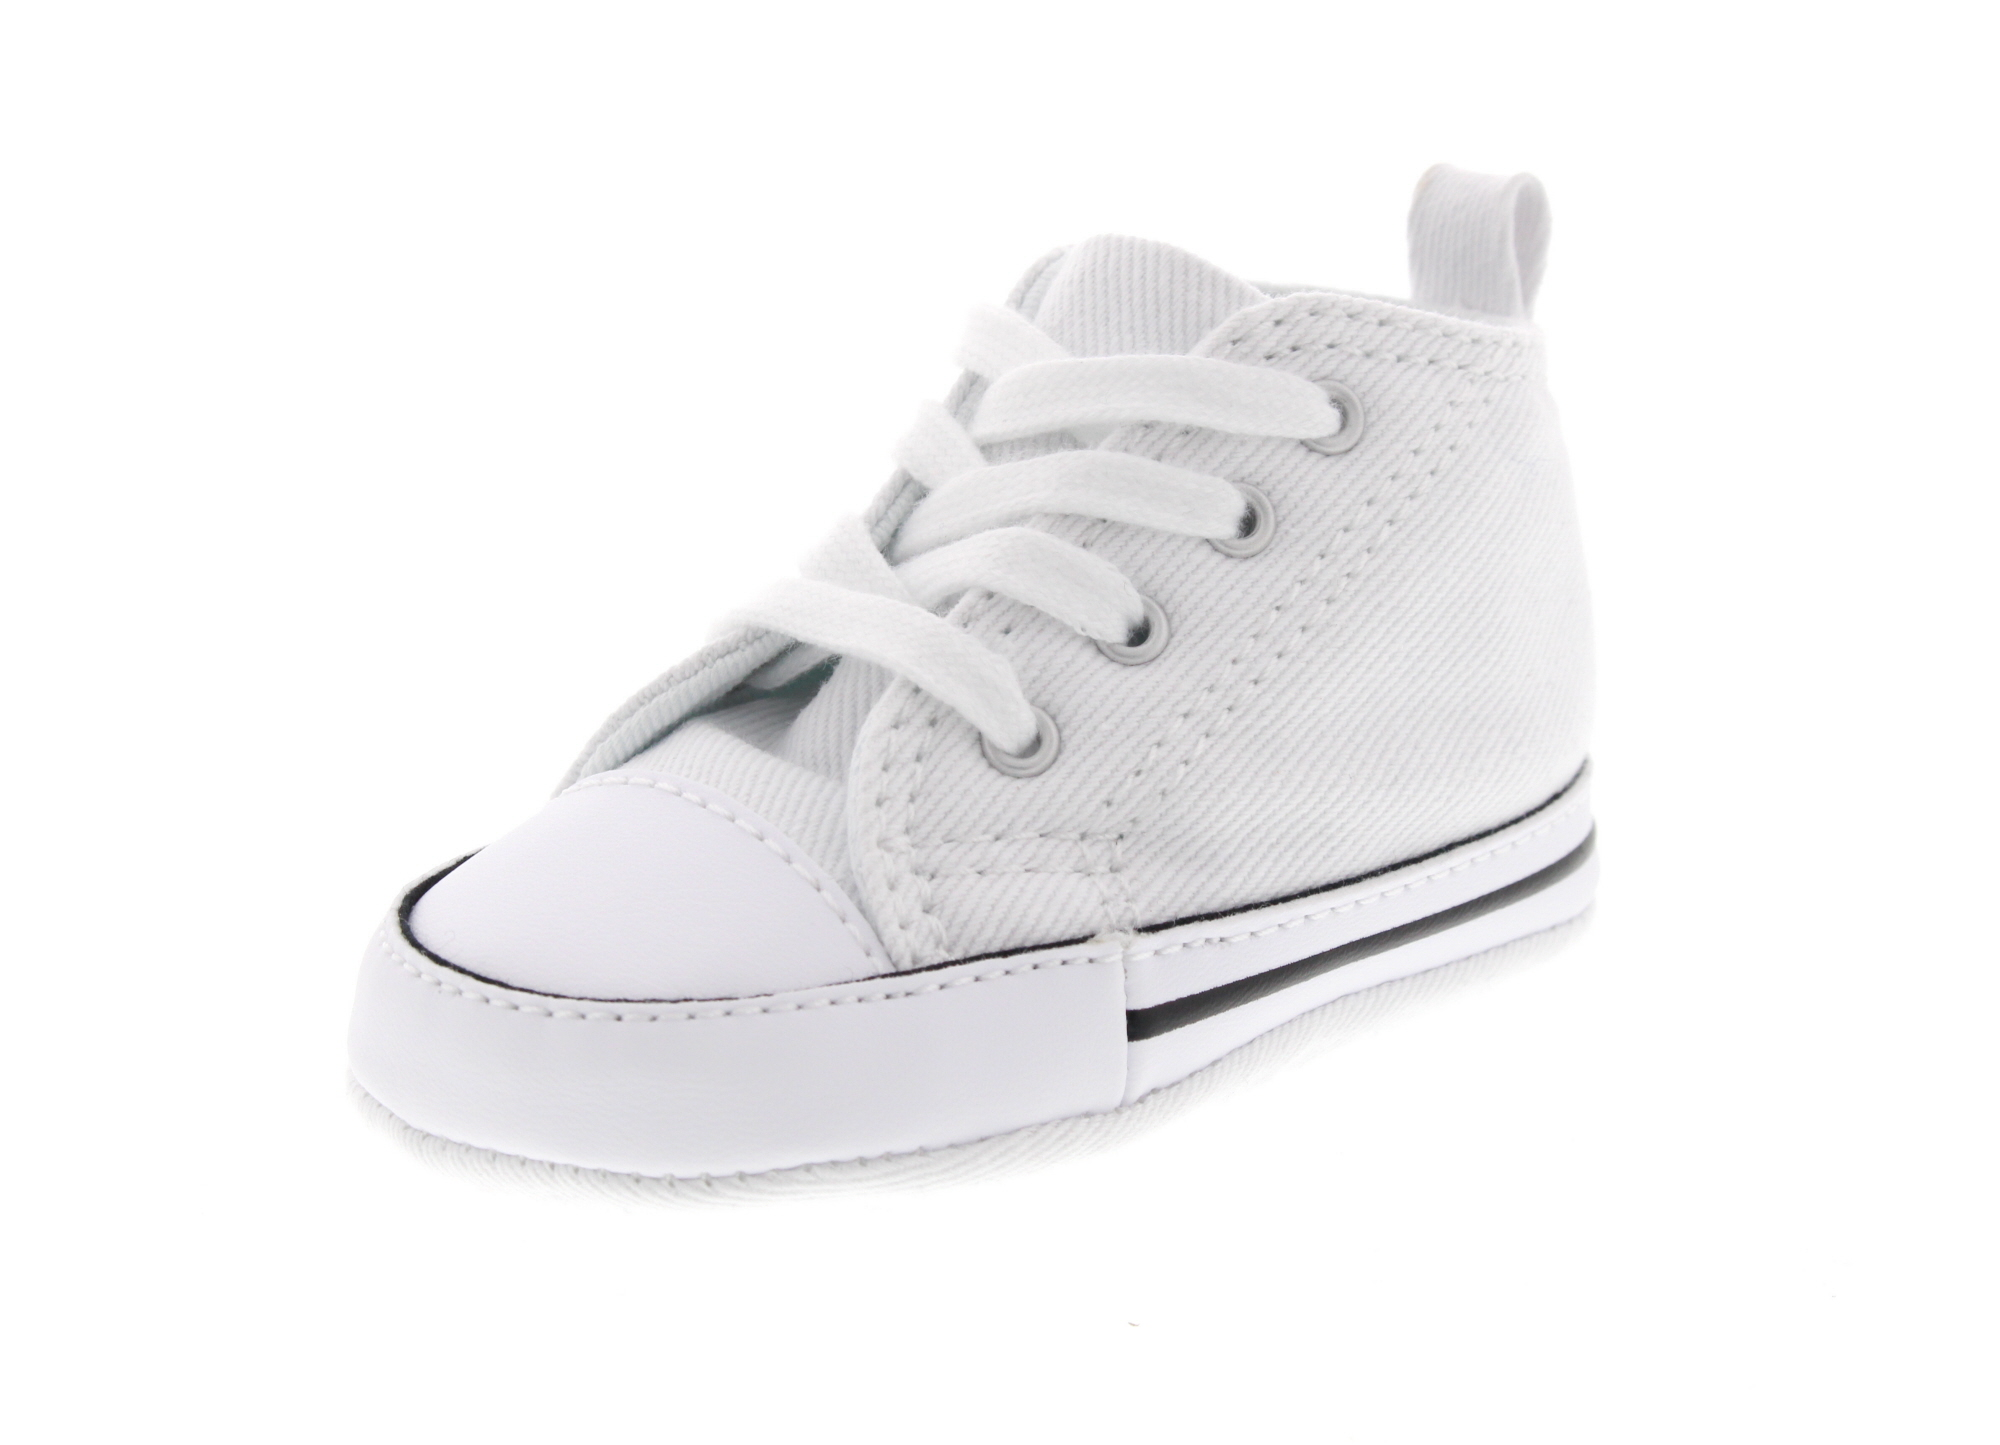 CONVERSE Babyschuhe - FIRST STAR HI 88877 - white-0